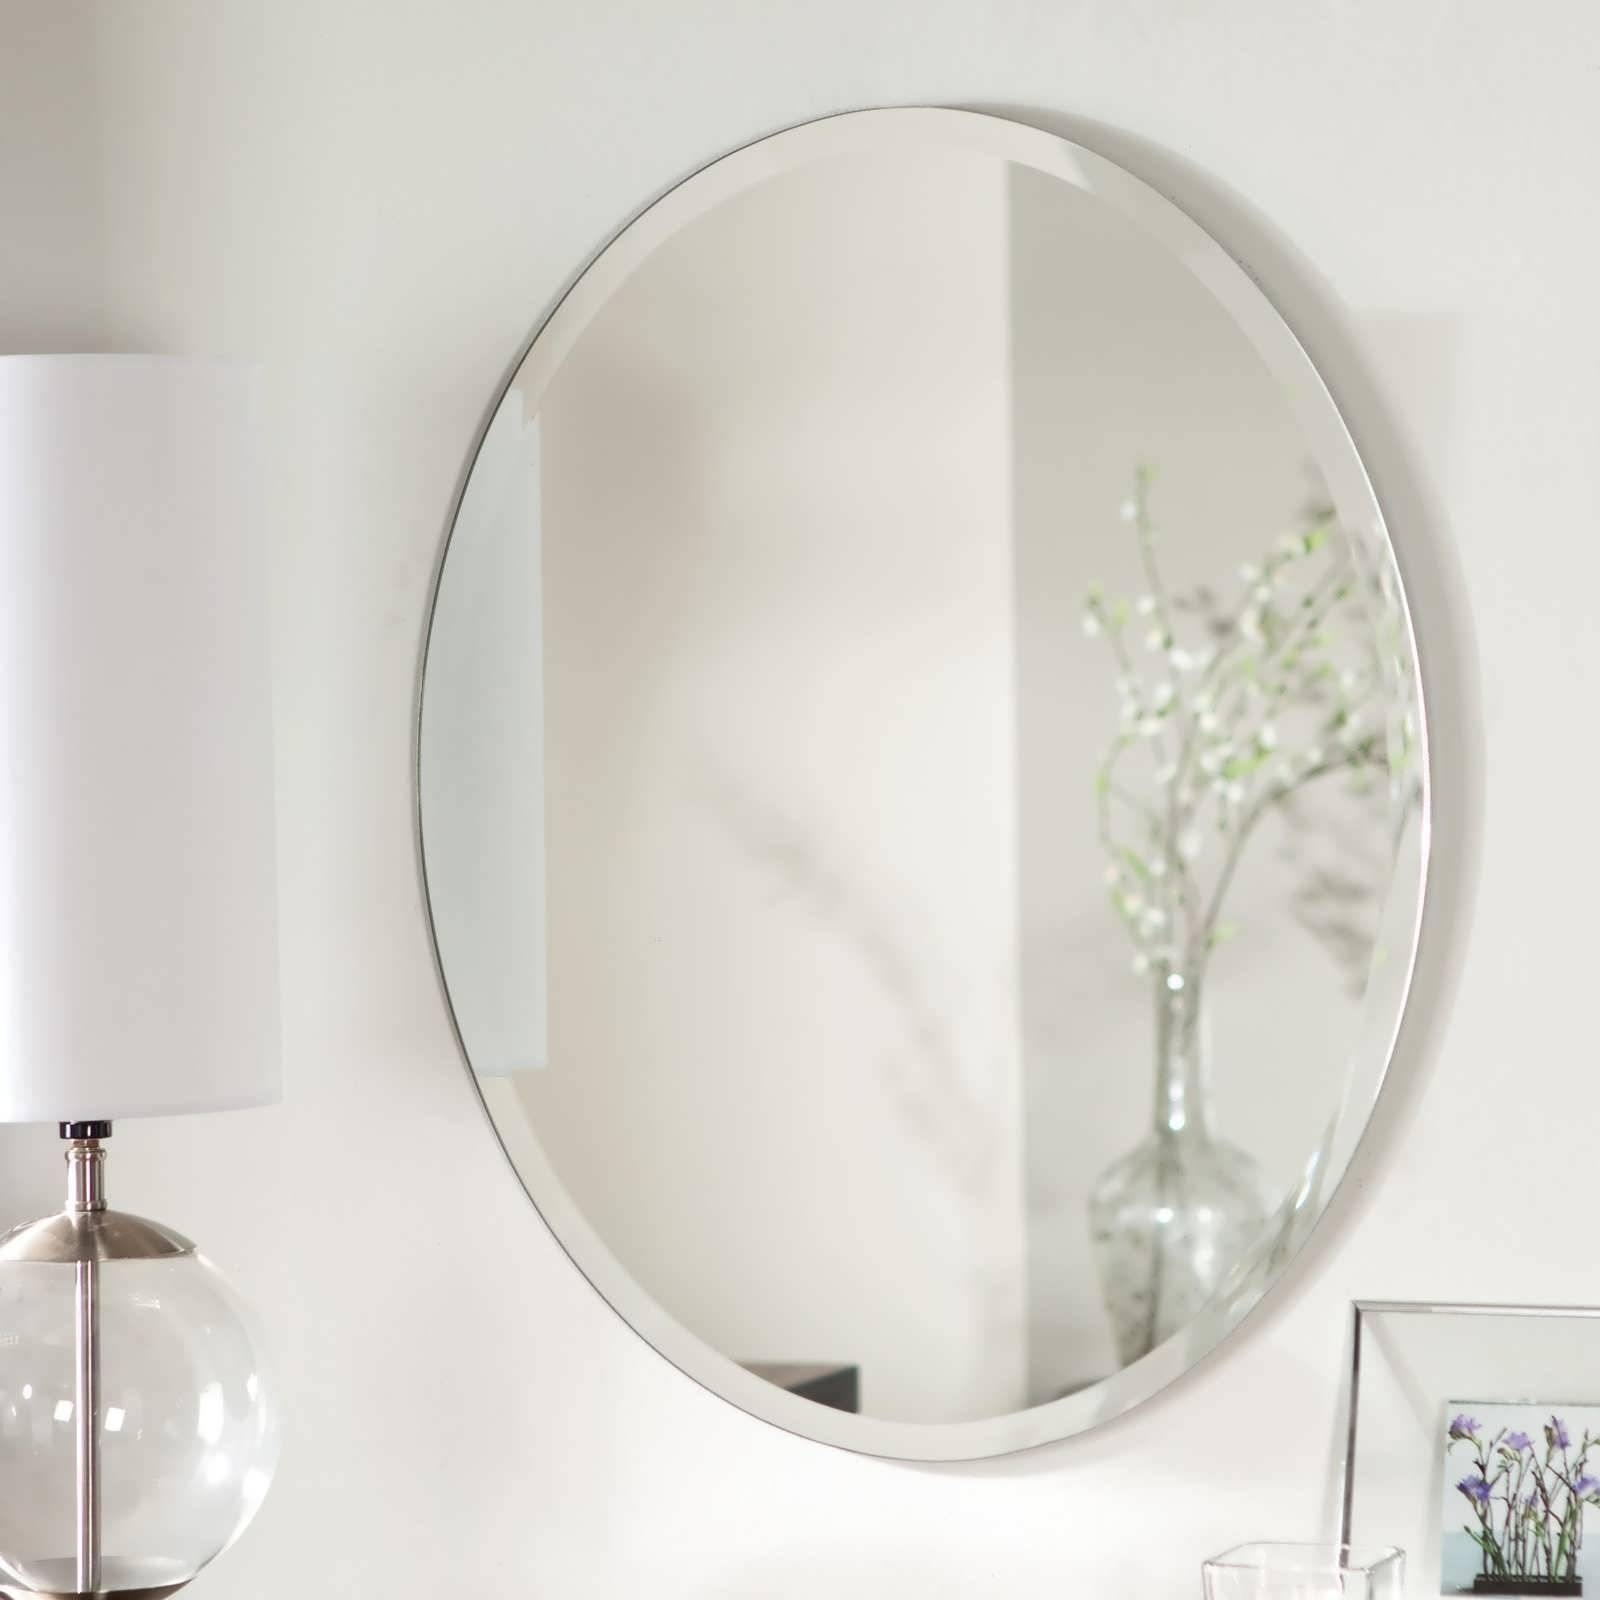 Bathroom Unusual Mirrors Bedroom 24X60 Mirror Intended For Photo 20